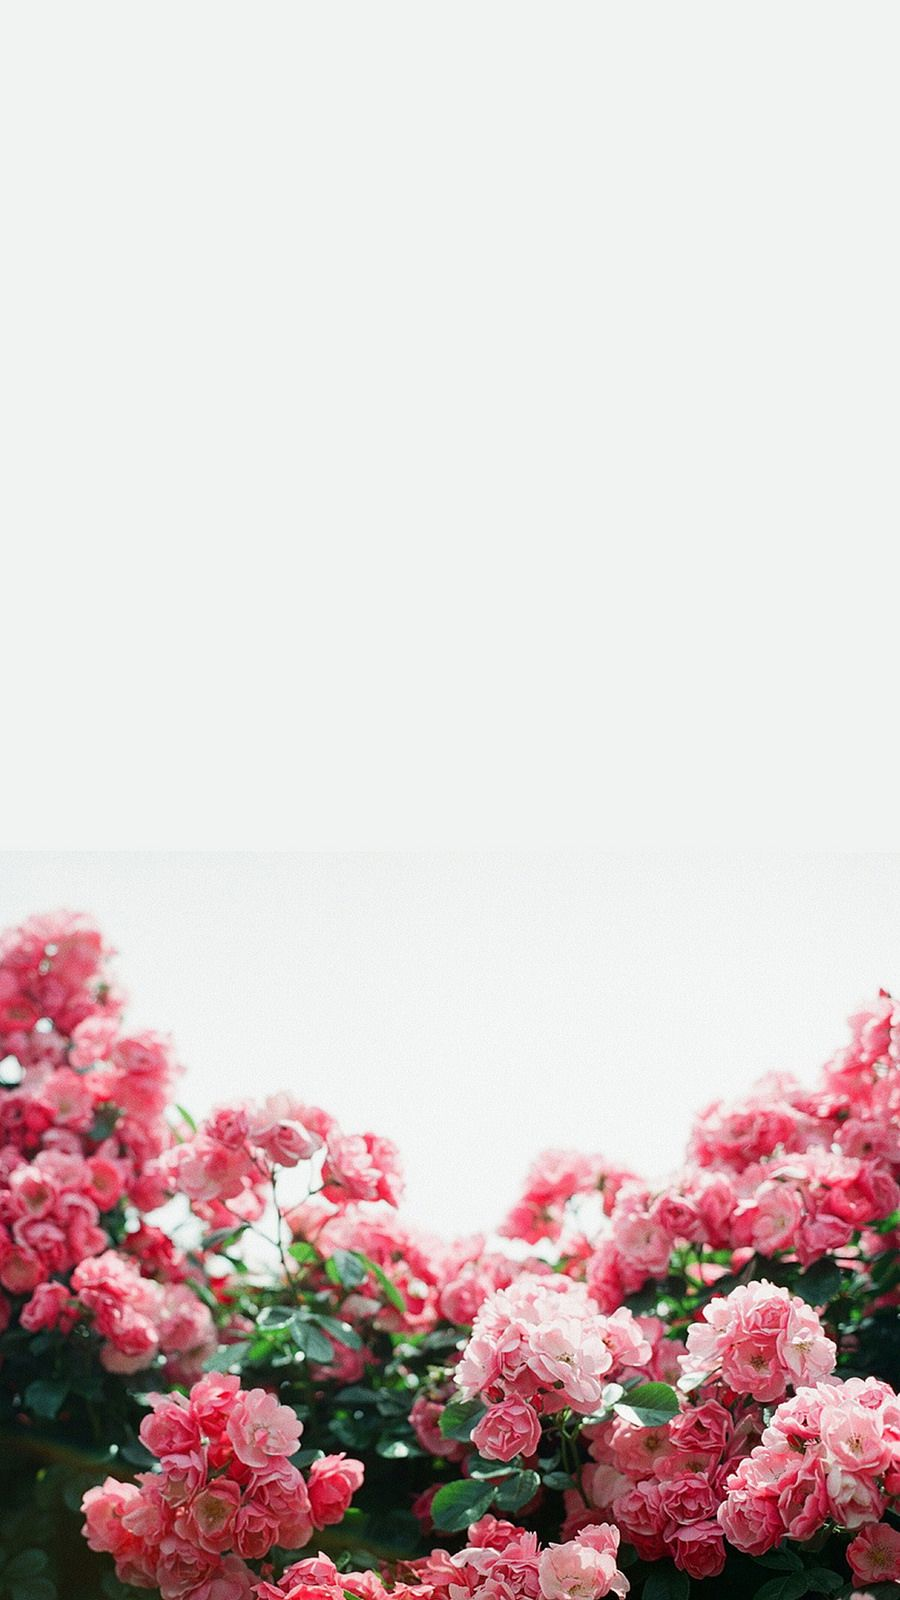 Found On Tumblr Original Photography By Qrumipan And Modified To Fit For The Iphone 6 Screen Size By Me Flower Wallpaper Phone Wallpaper Spring Wallpaper